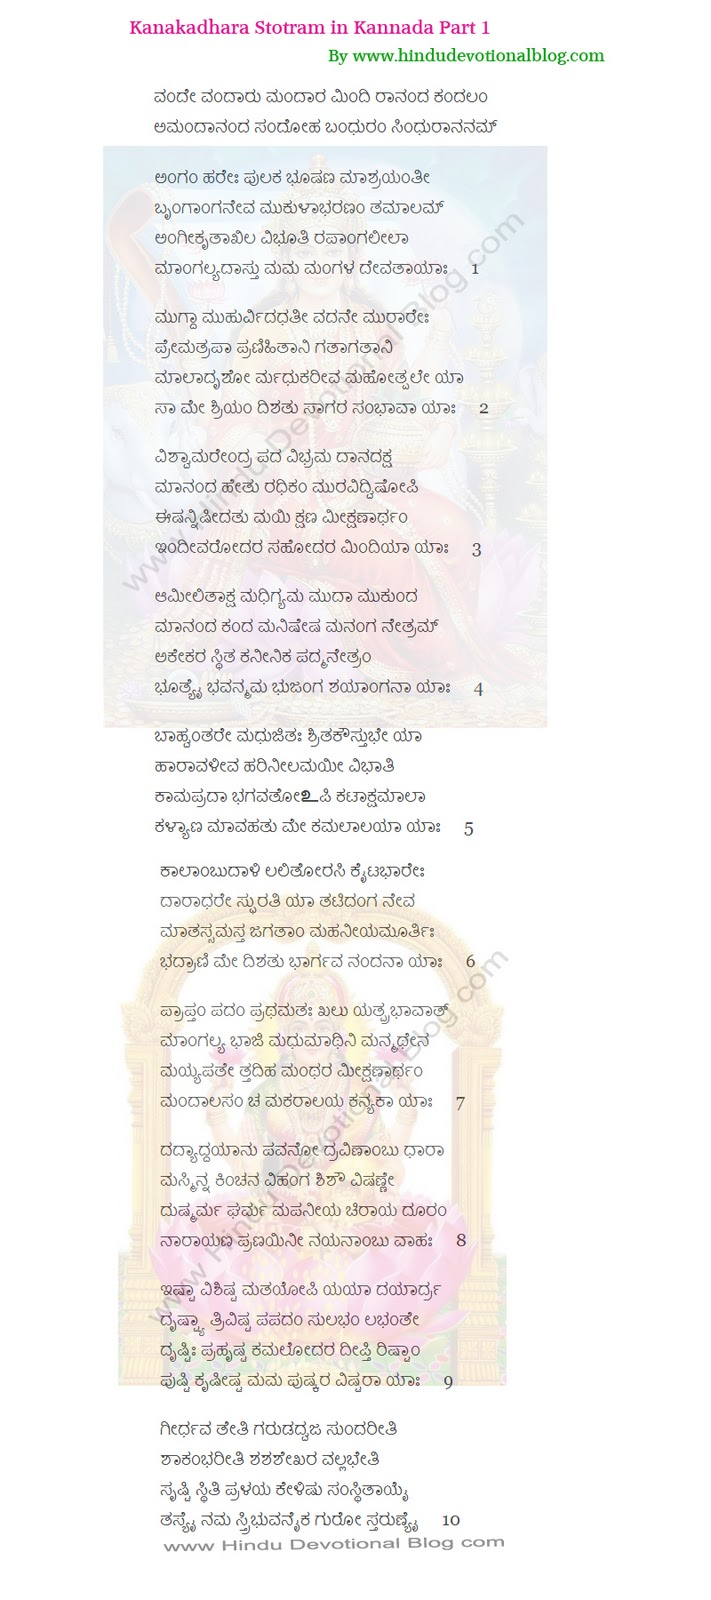 Kanakadhara stotram lyrics in kannada language hindu devotional blog picture of kanakadhara stotram lyrics in kannada language free download from hindu devotional blog stopboris Gallery